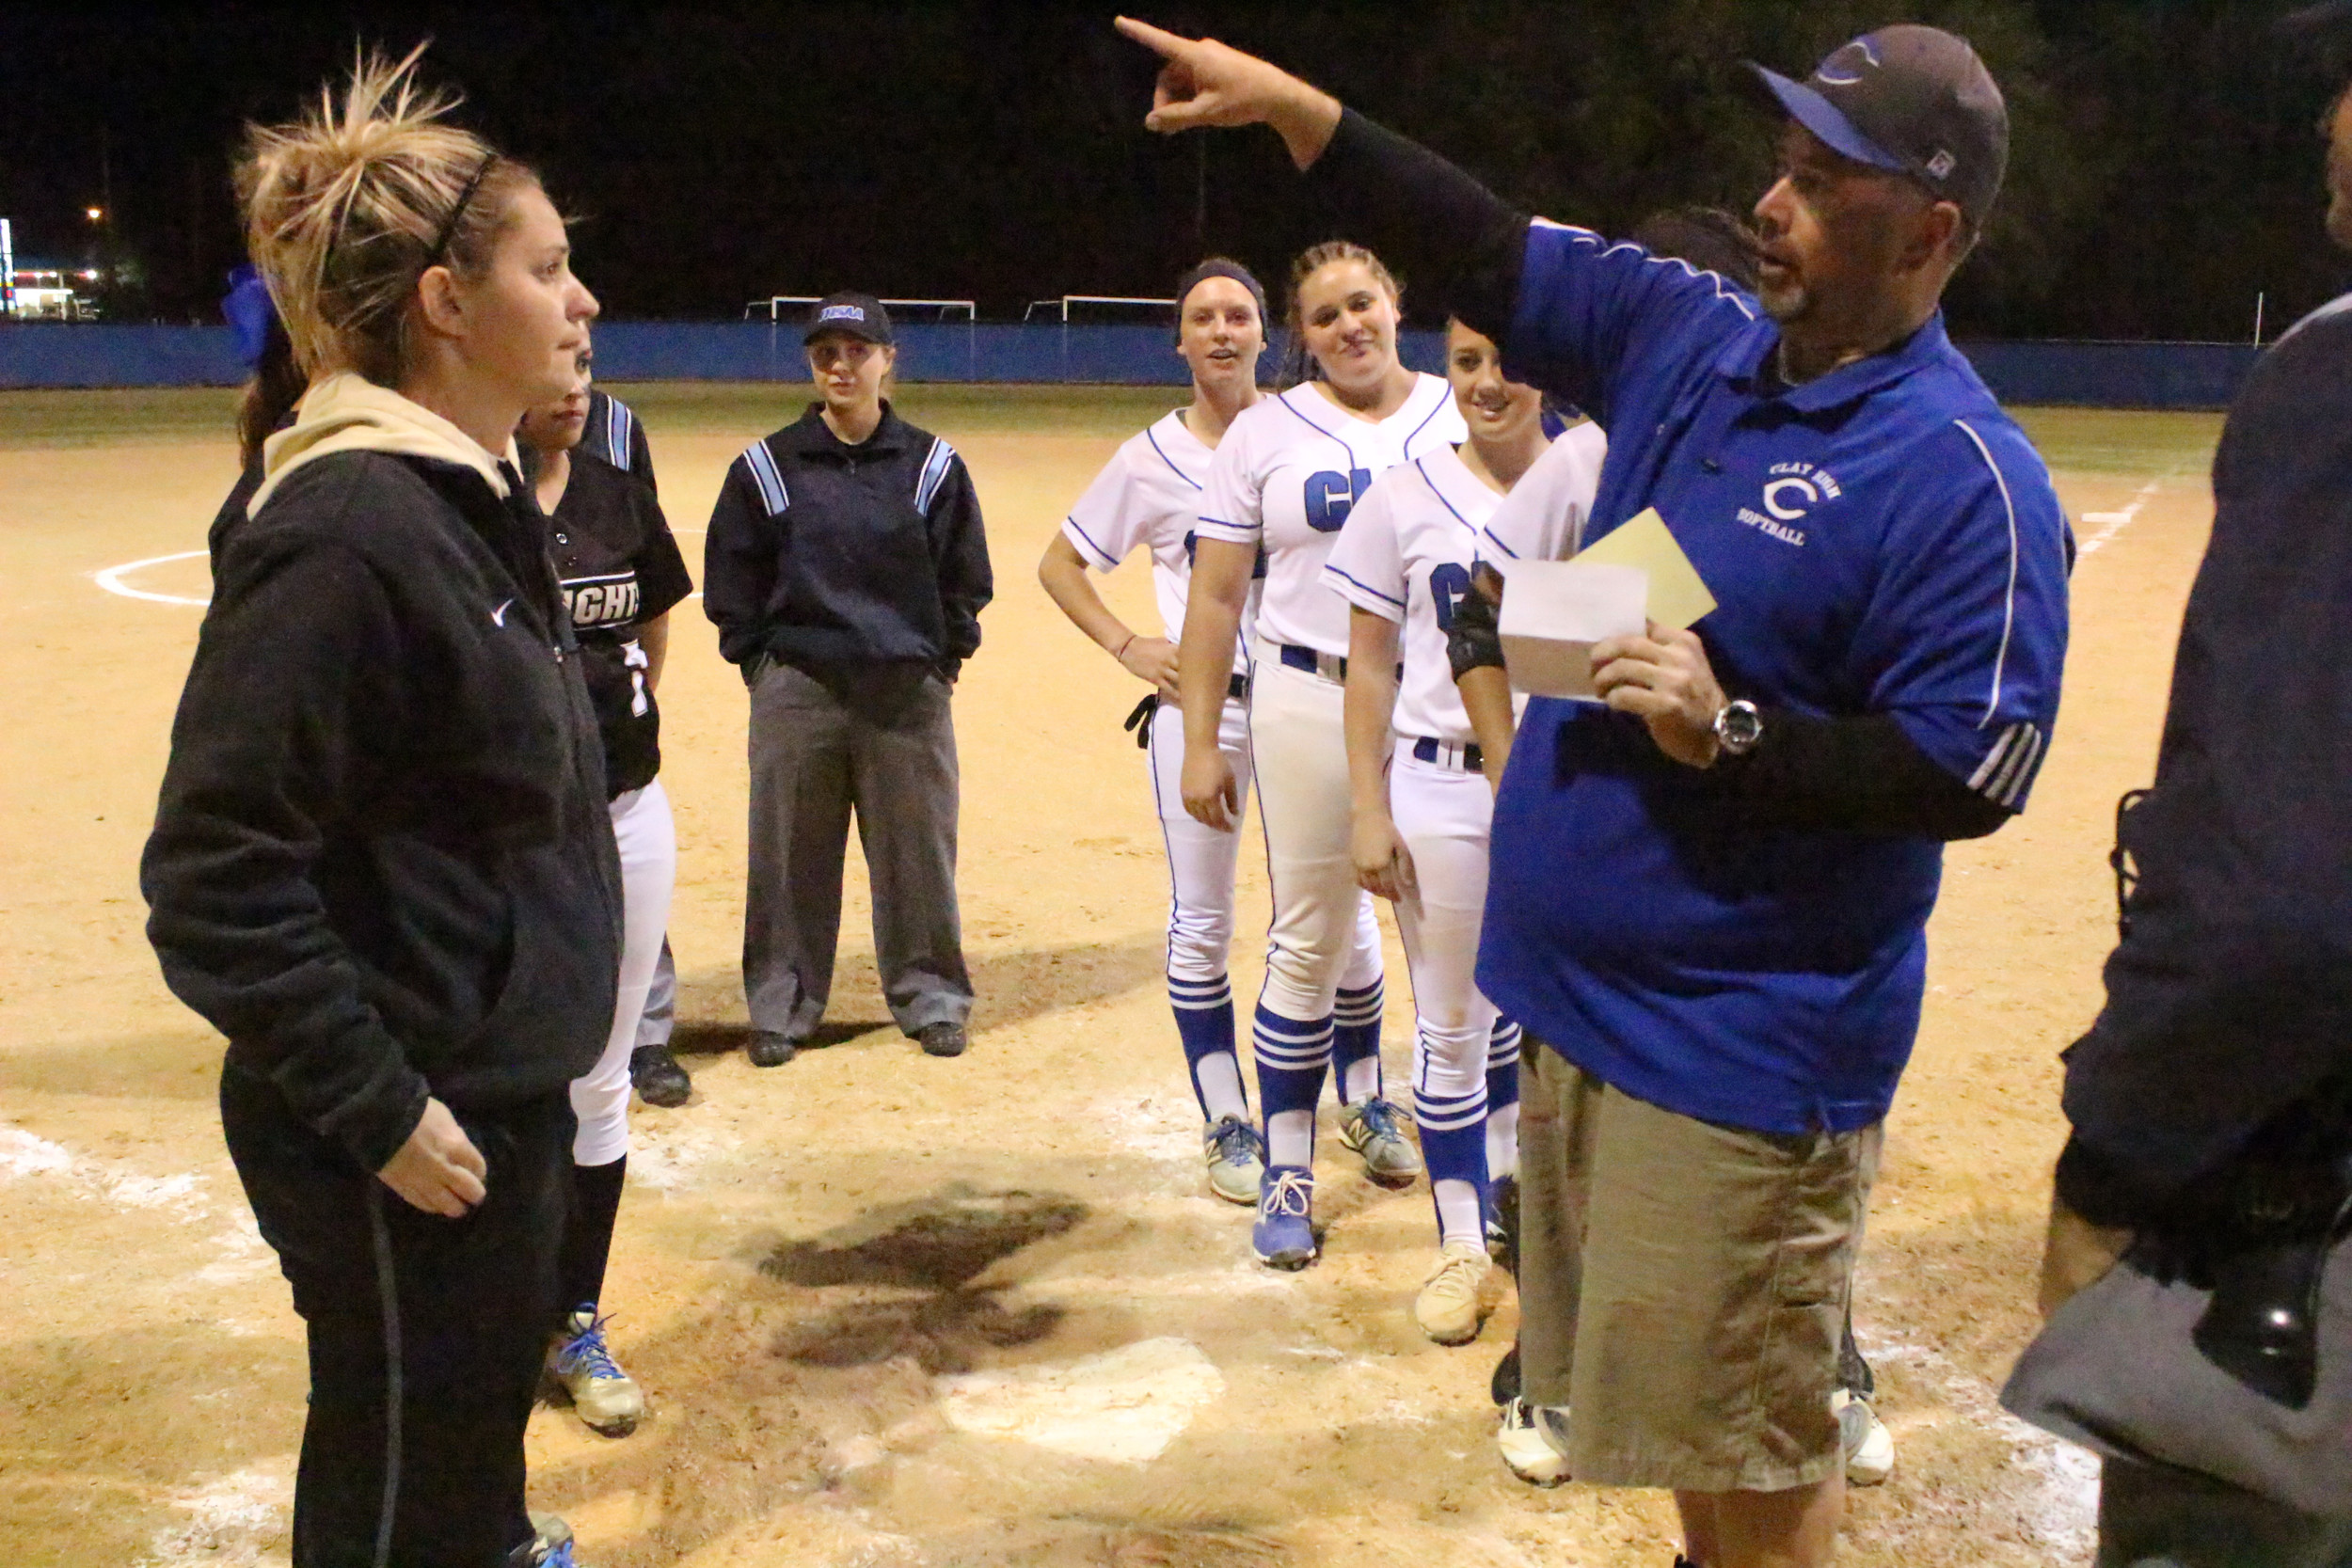 Clay High coach Matt Lewis, right, points out field regulations to Oakleaf High coach Christine Thompson before Knights 3-0 win Friday night. Thompson was a player for Lewis on Clay's 2001 state championship team.